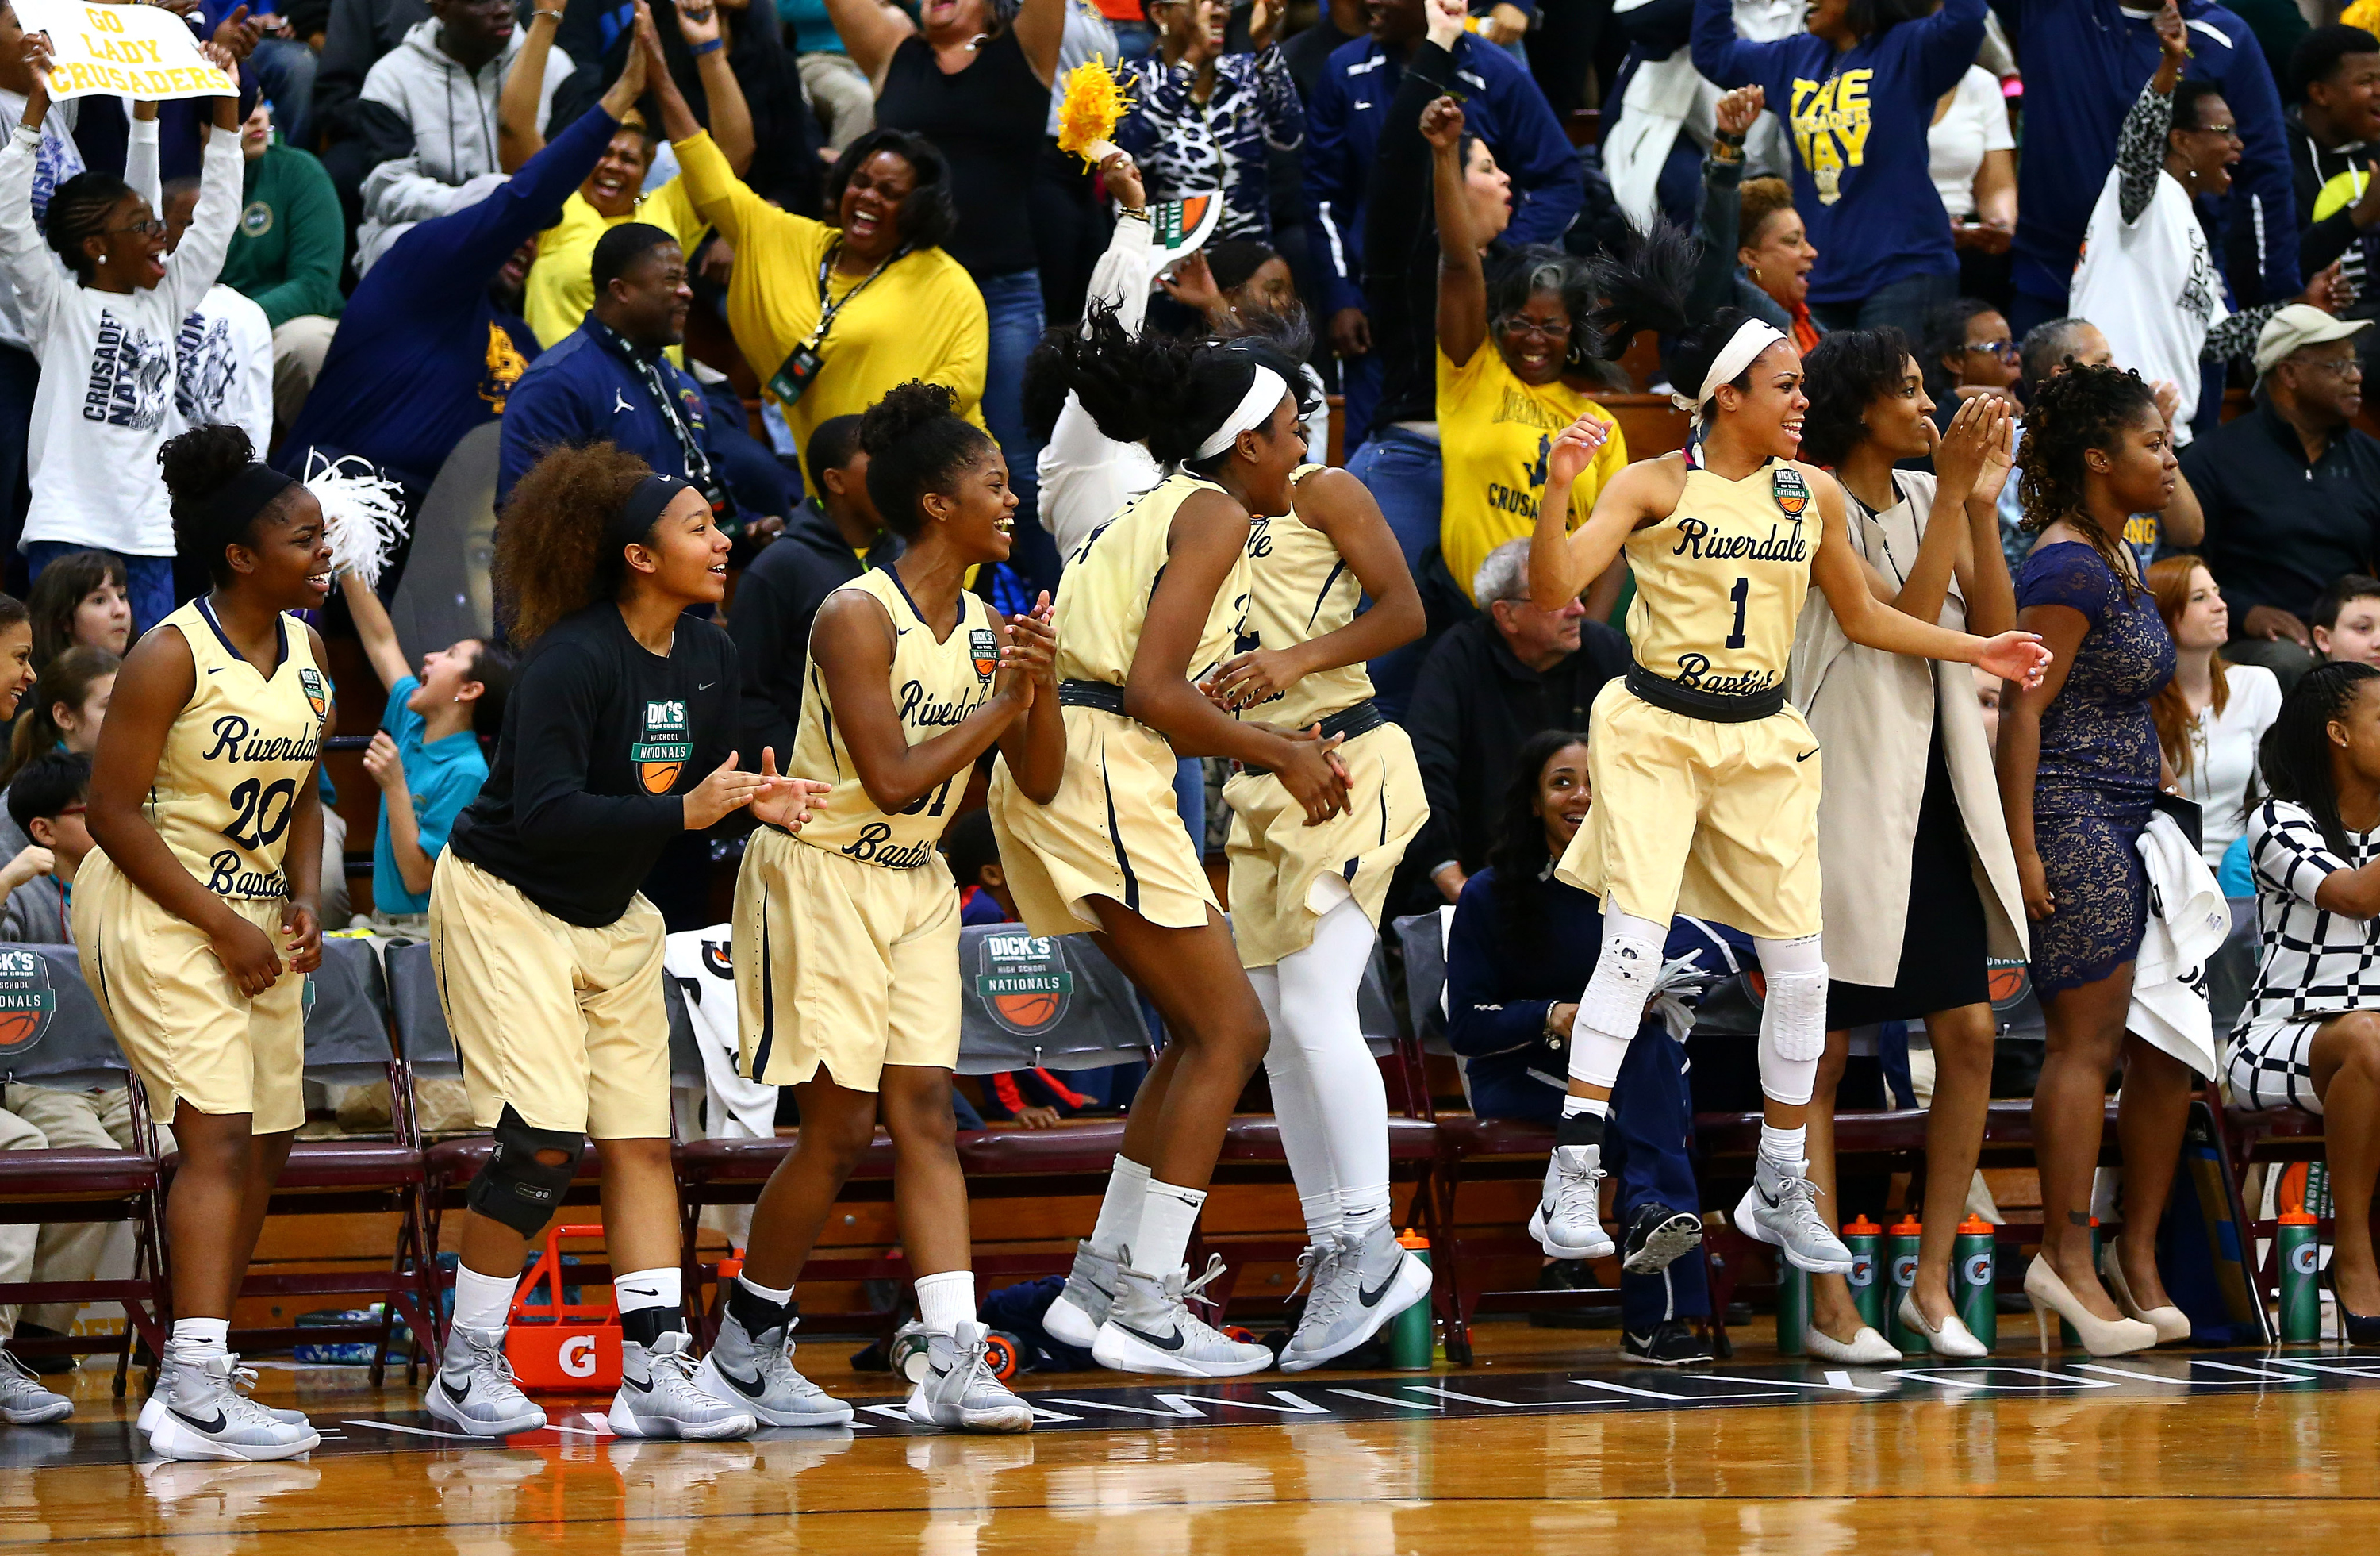 Riverdale Baptist reacts after defeating St. Francis 57-50 during Dick's Sporting Goods High School Basketball Nationals at Christ the King Regional high school -- Photo by Andy Marlin USA TODAY Sports Images, Gannett ORG XMIT: US 134676 Dick's basketbal 4/1/2016 [Via MerlinFTP Drop]